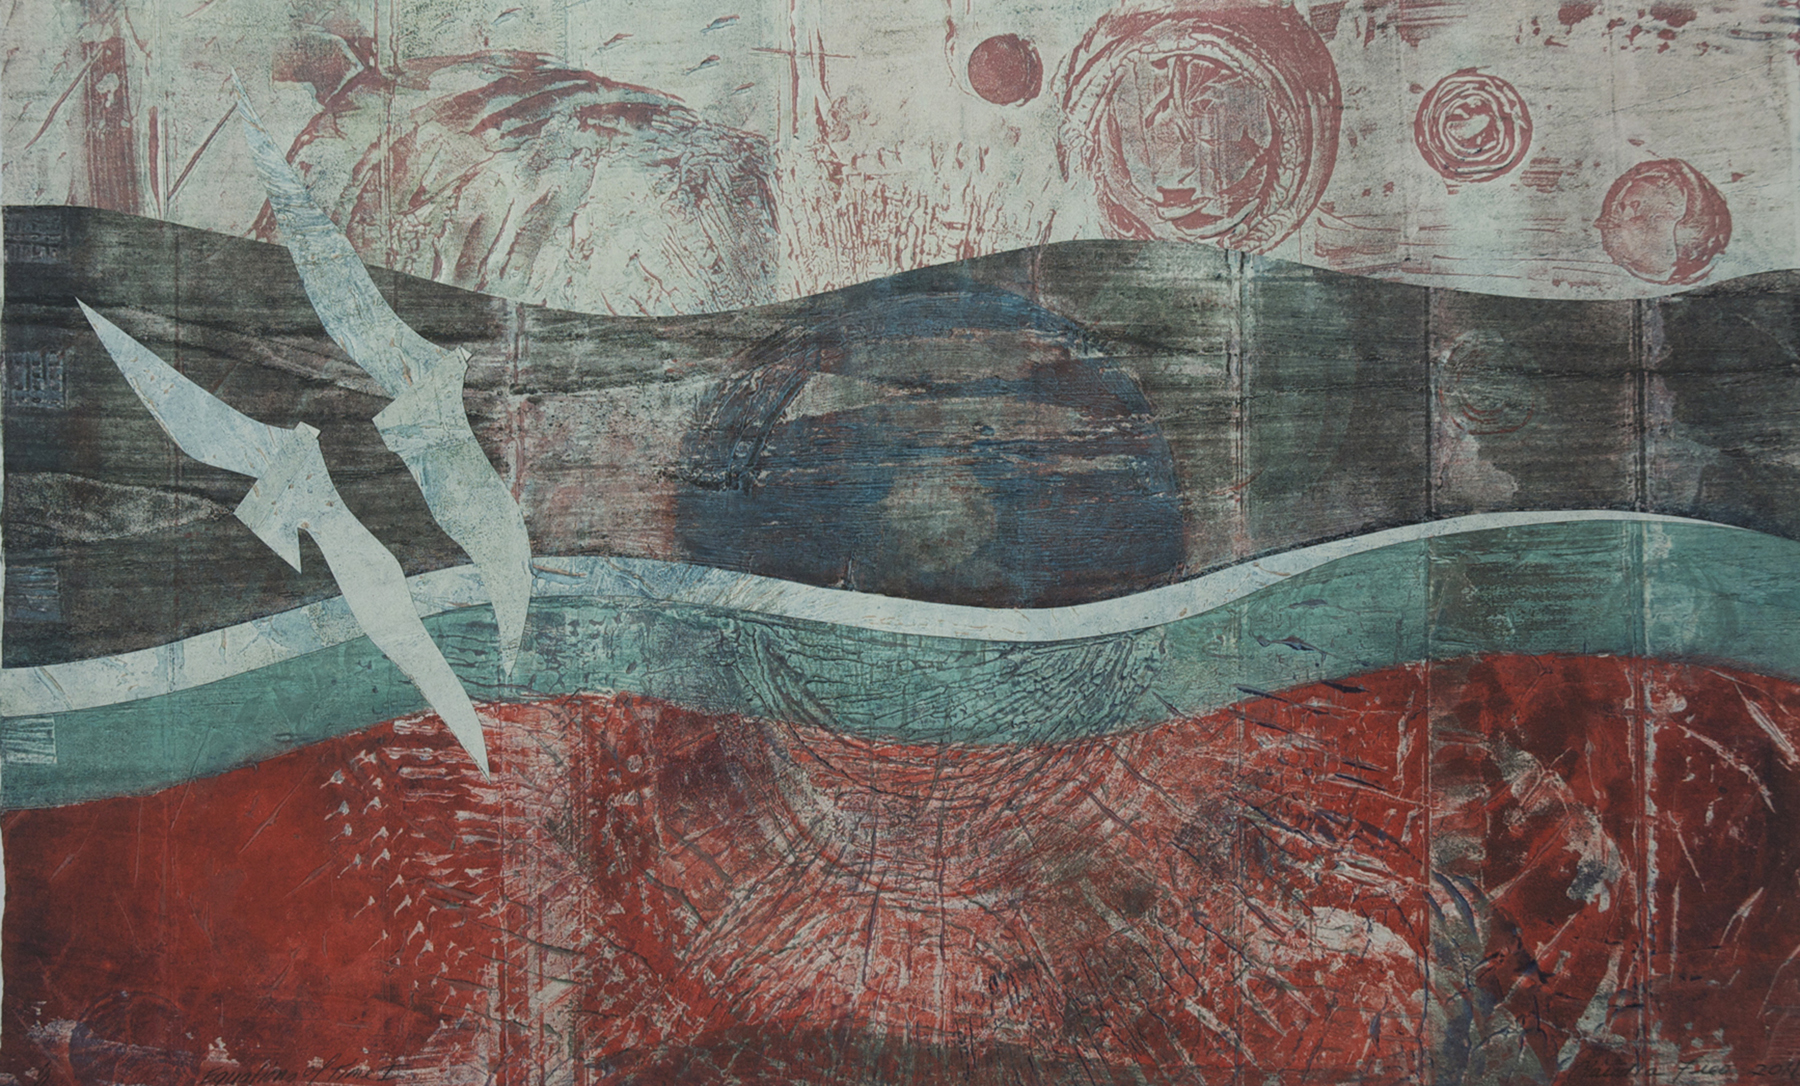 Equations of Time I, collagraph monoprint, collage, 2012